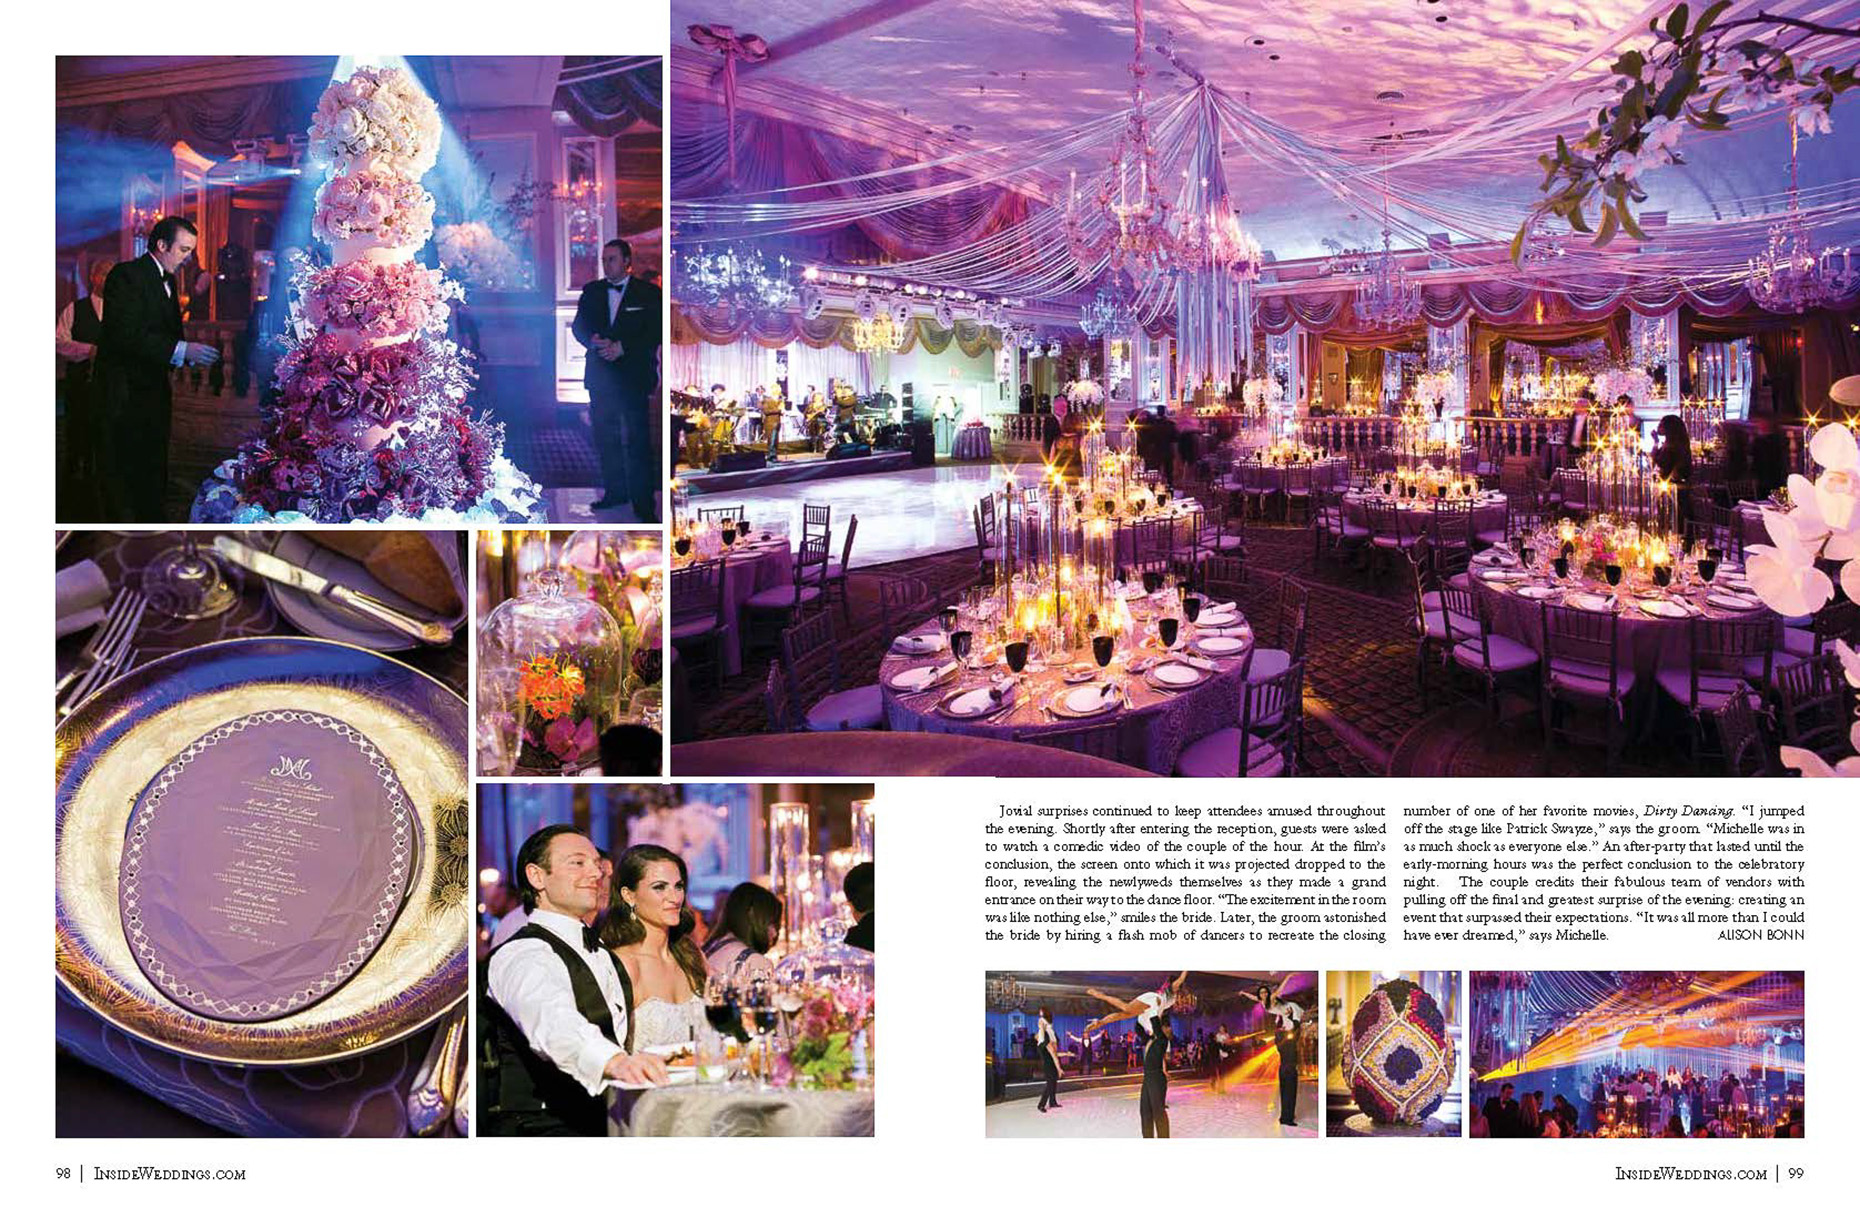 010_InsideWeddings_spread5_spring2014